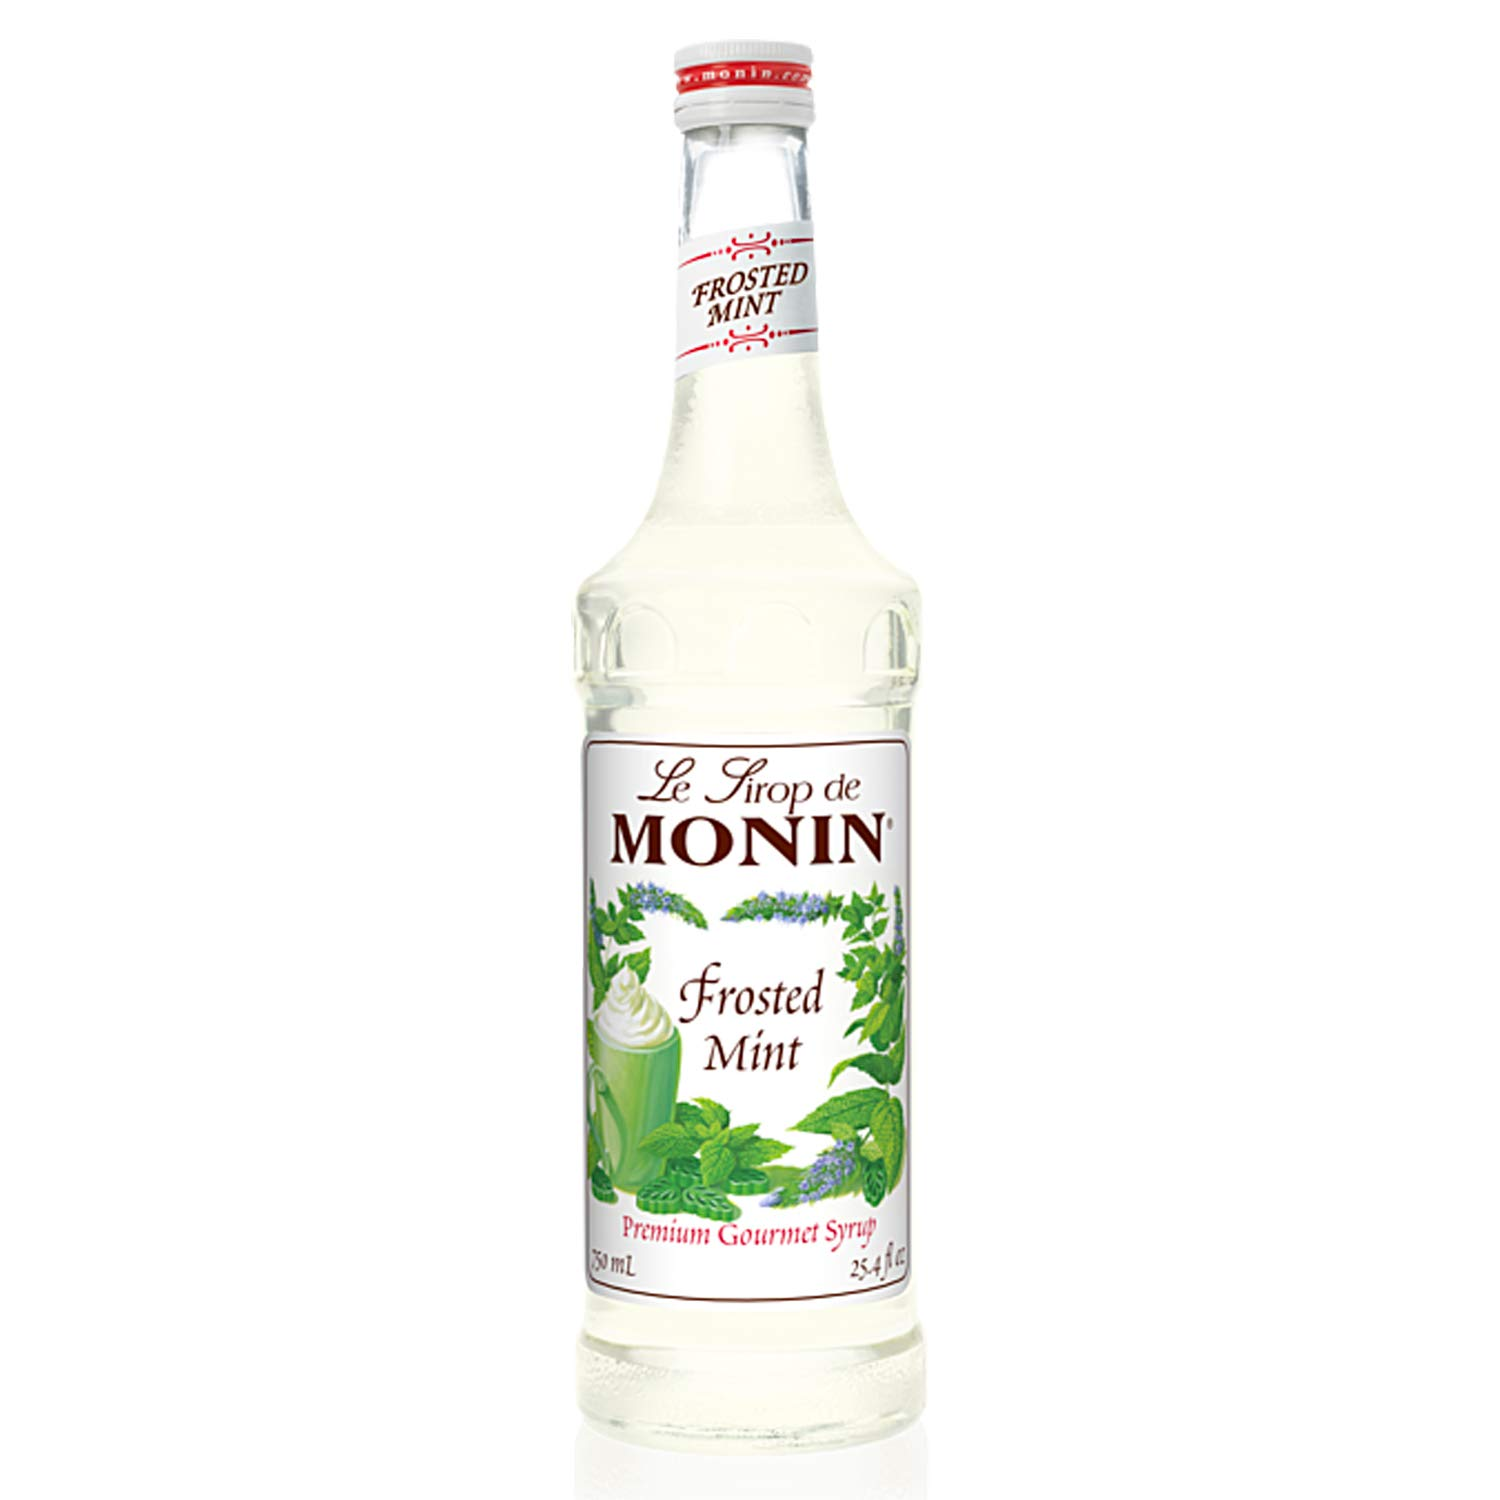 Monin - Frosted Mint Syrup, Bold Spearmint Coolness, Natural Flavors, Great for Smoothies, Sodas, Cocktails, and Teas, Non-GMO, Gluten-Free (750 ml)